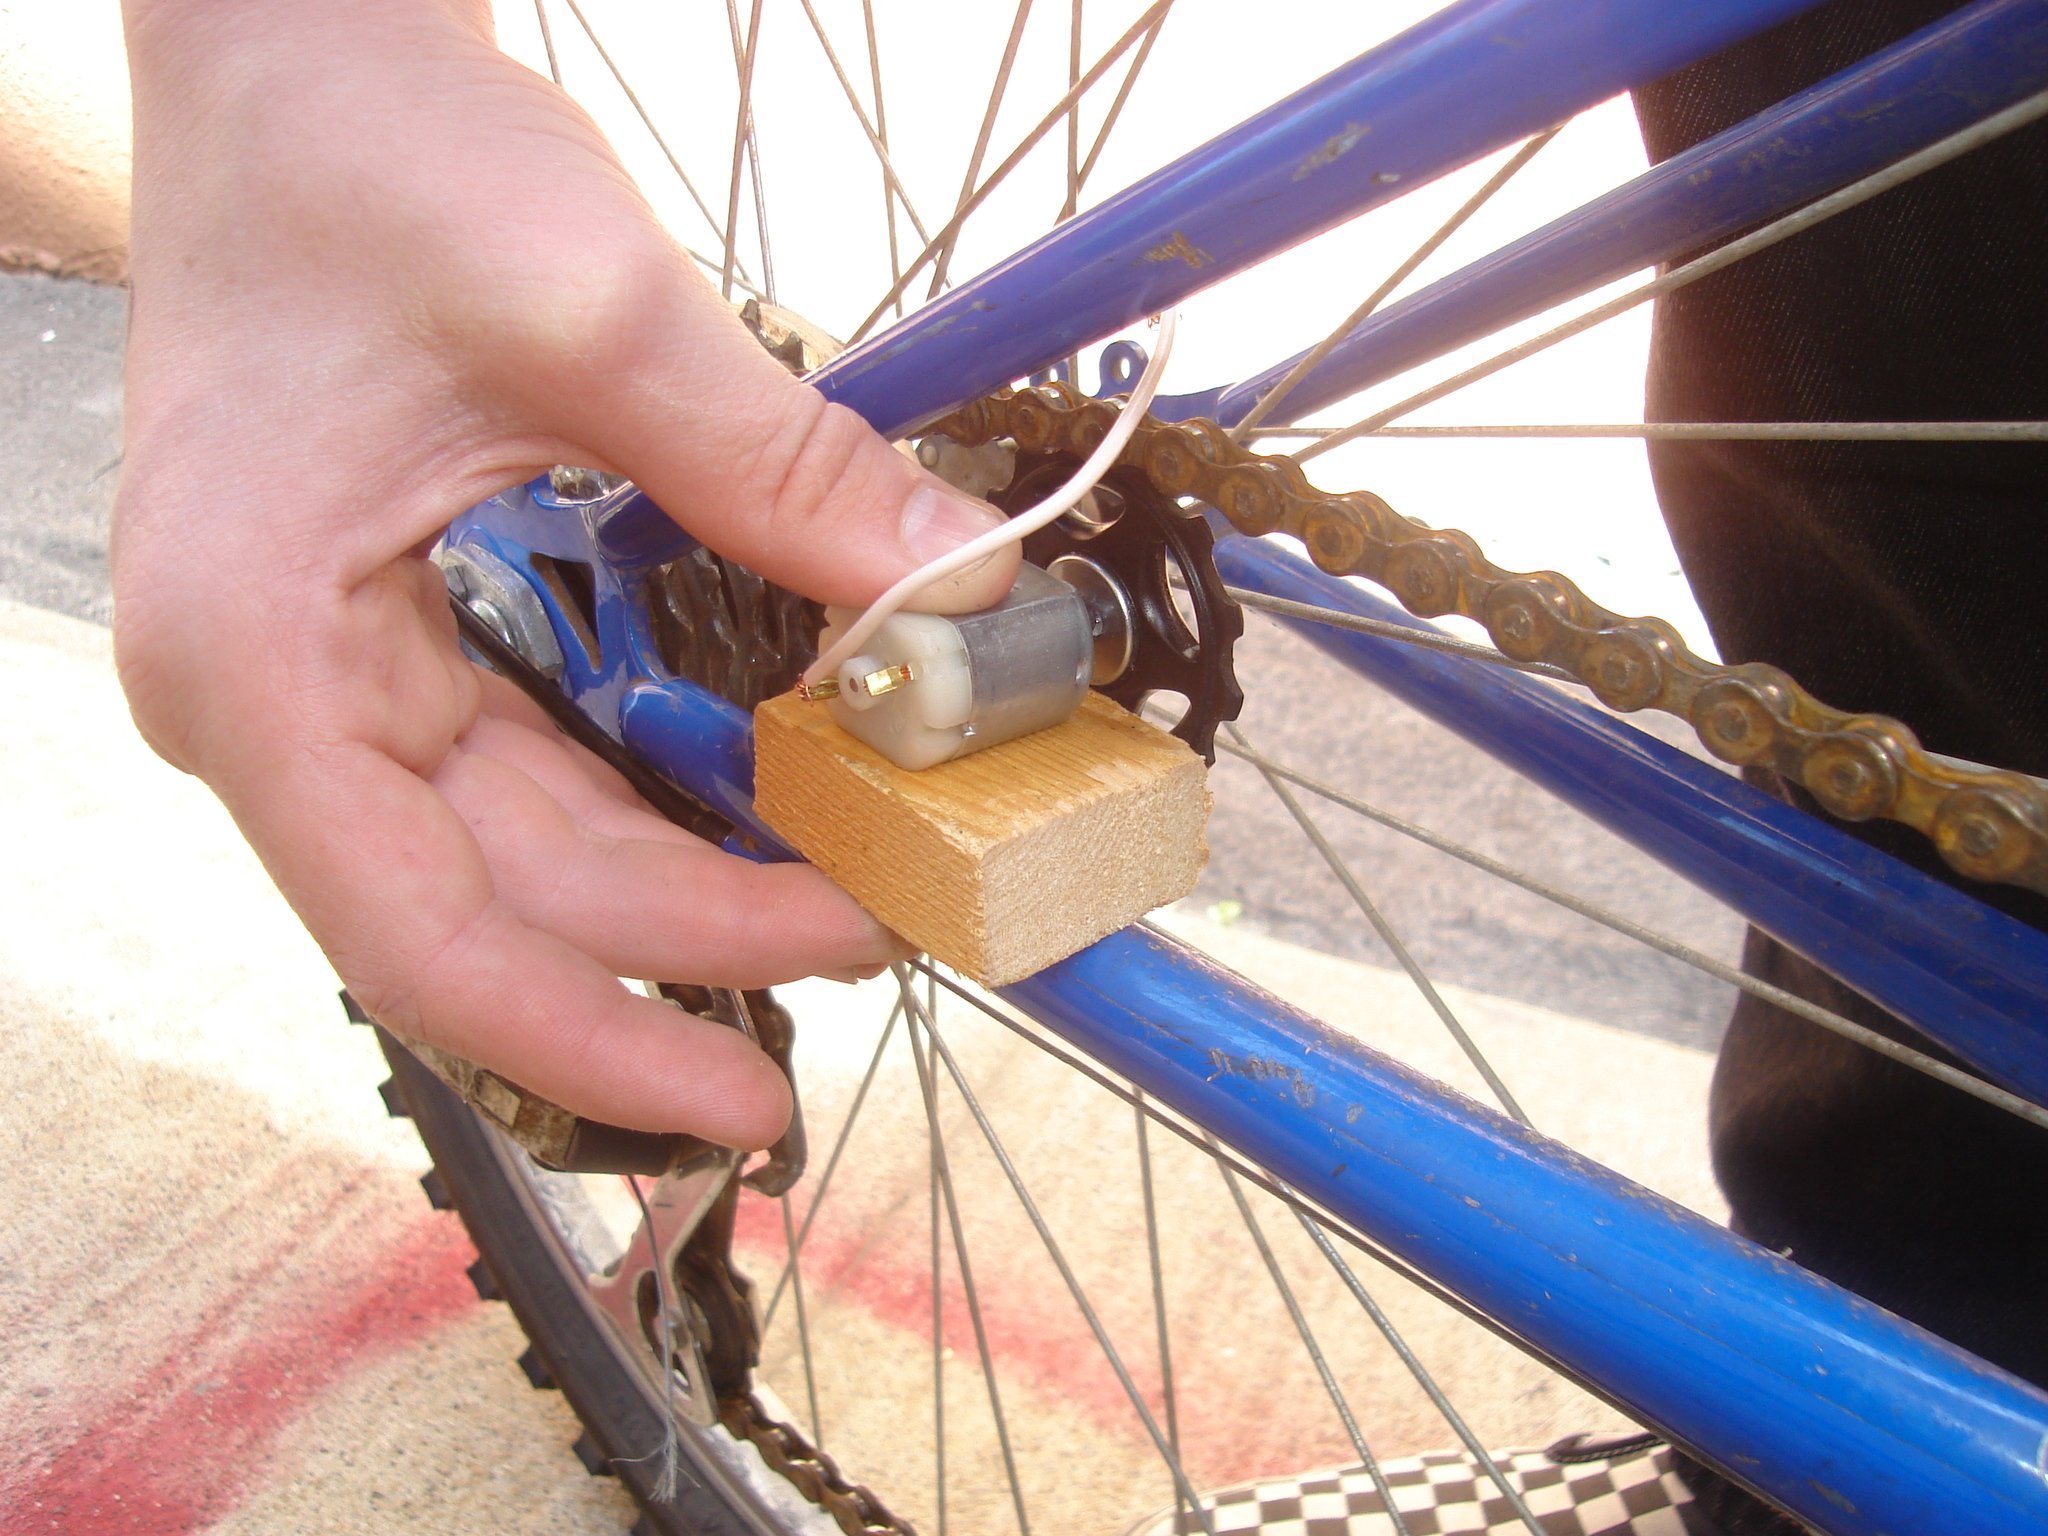 Picture of Mounting the Gear and Motor Onto the Bike